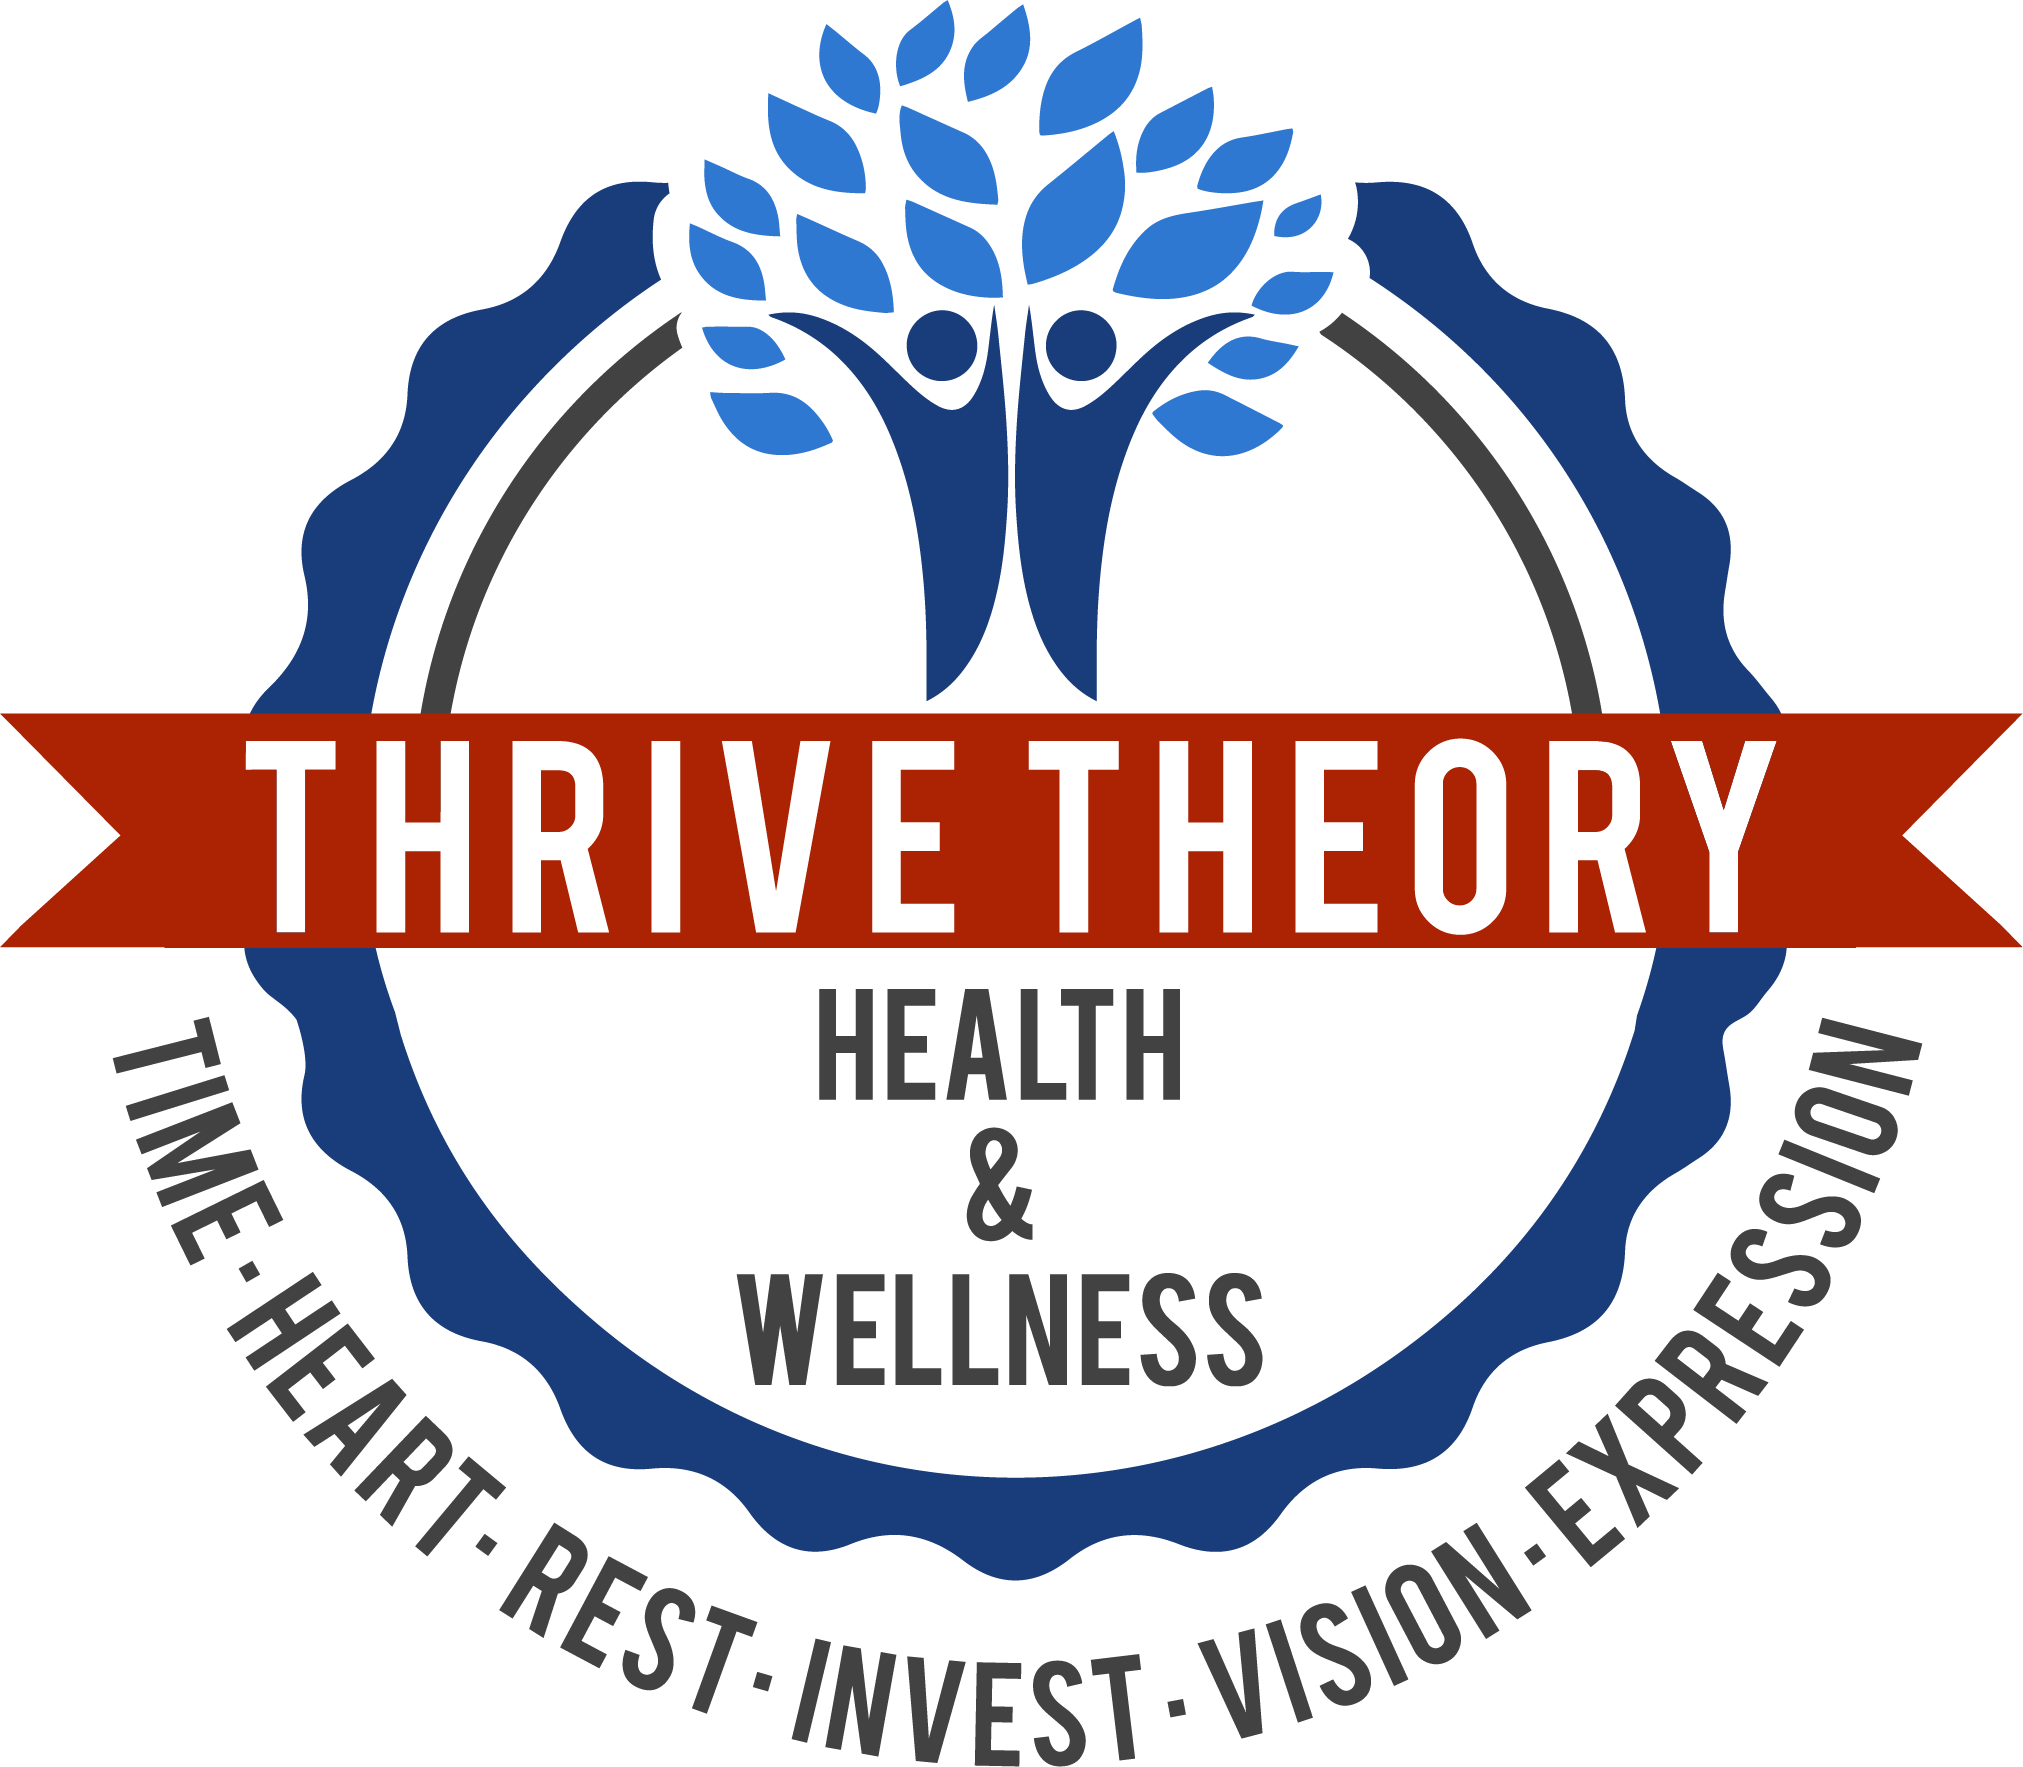 The Thrive Theory